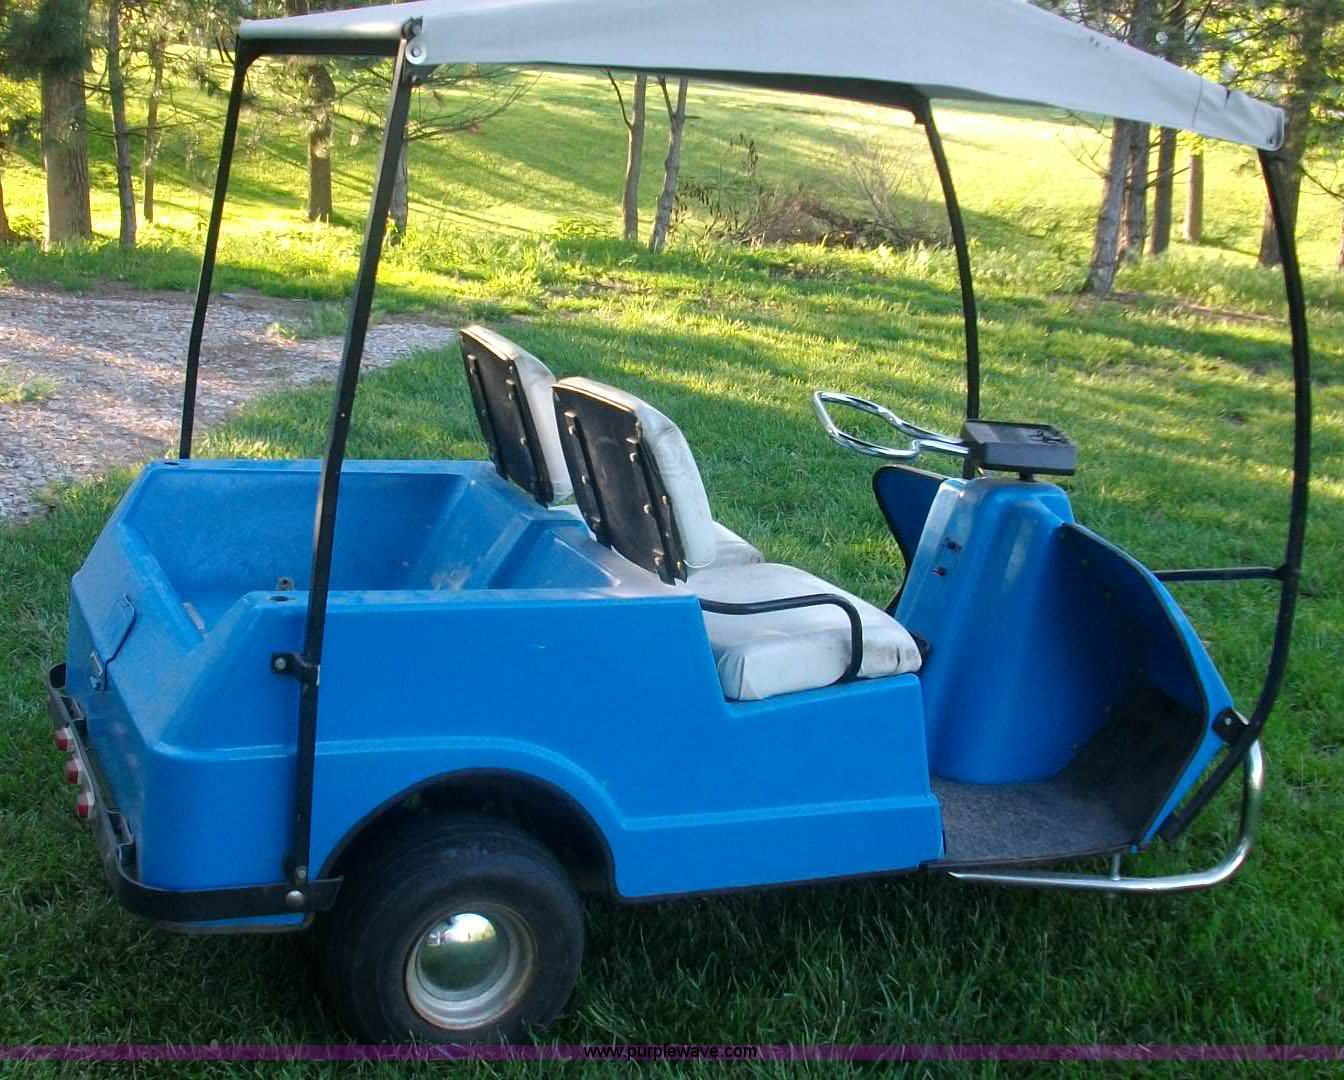 1982 Harley Davidson golf cart | Item C1126 | SOLD! June 12...